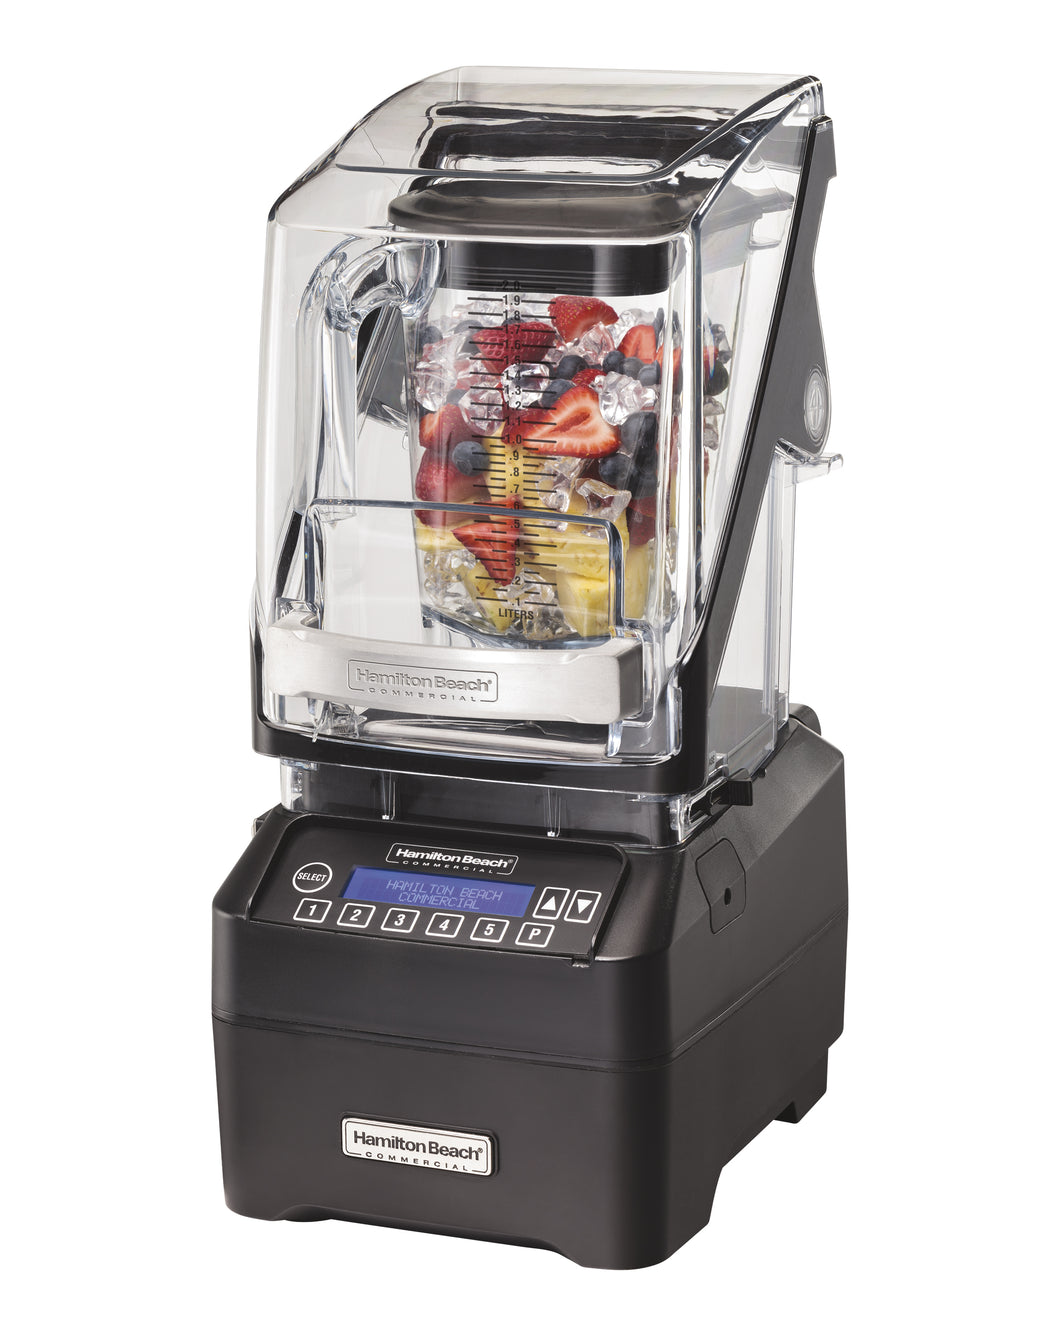 Hamilton Beach Commercial HBH755 Eclipse, 3 HP, Quiet Blend Technology, 5 program buttons, pulse, Quiet Shield, 64oz/2L Container